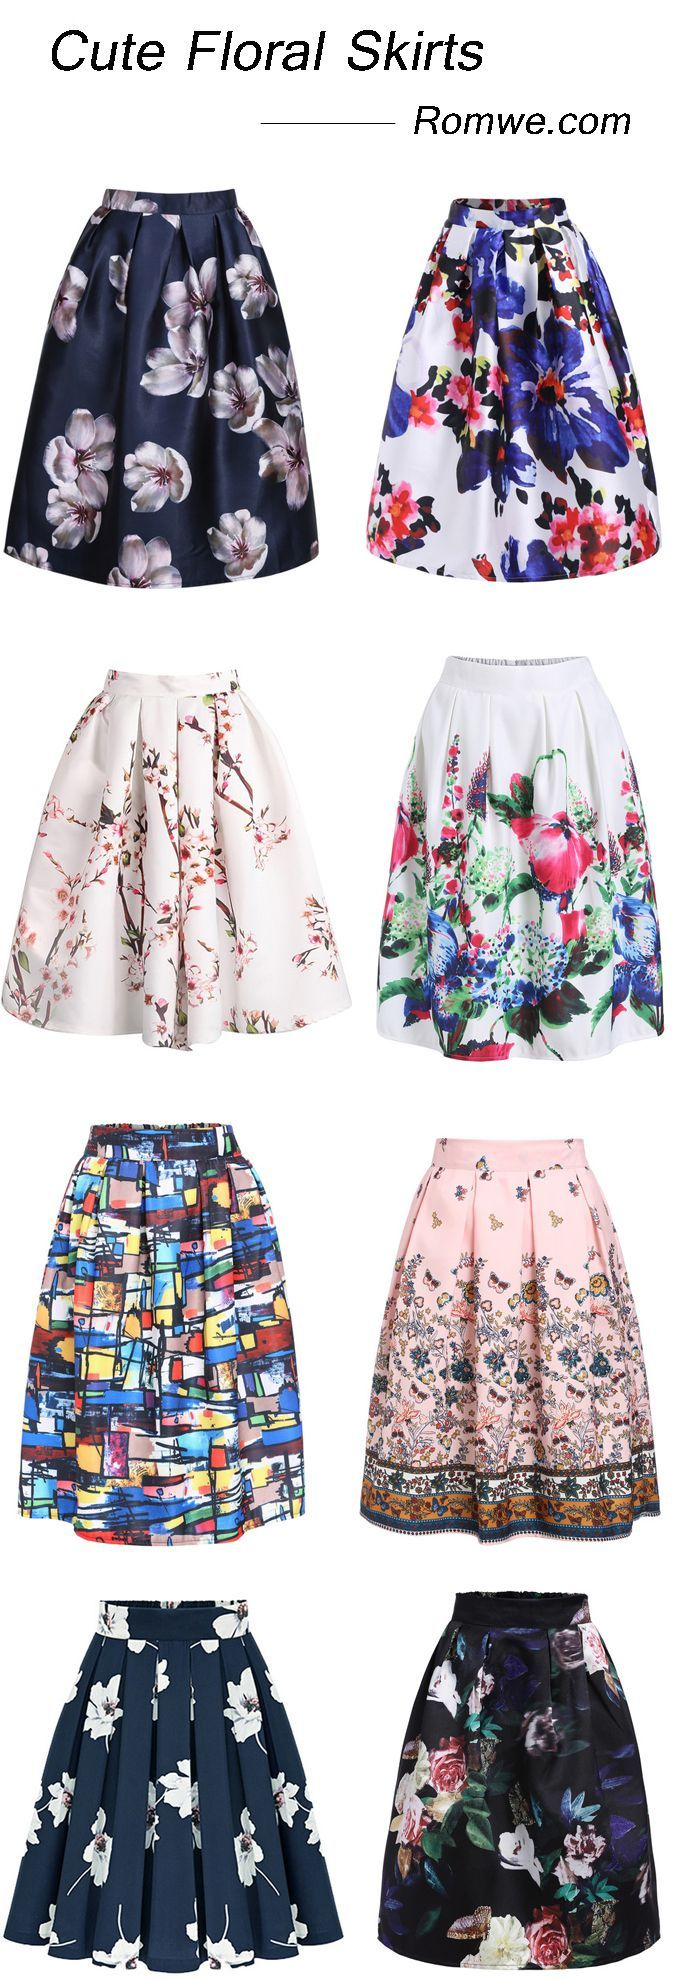 Cute floral midi skirts from $10.99, best for spring/summer. Find more from romwe.com